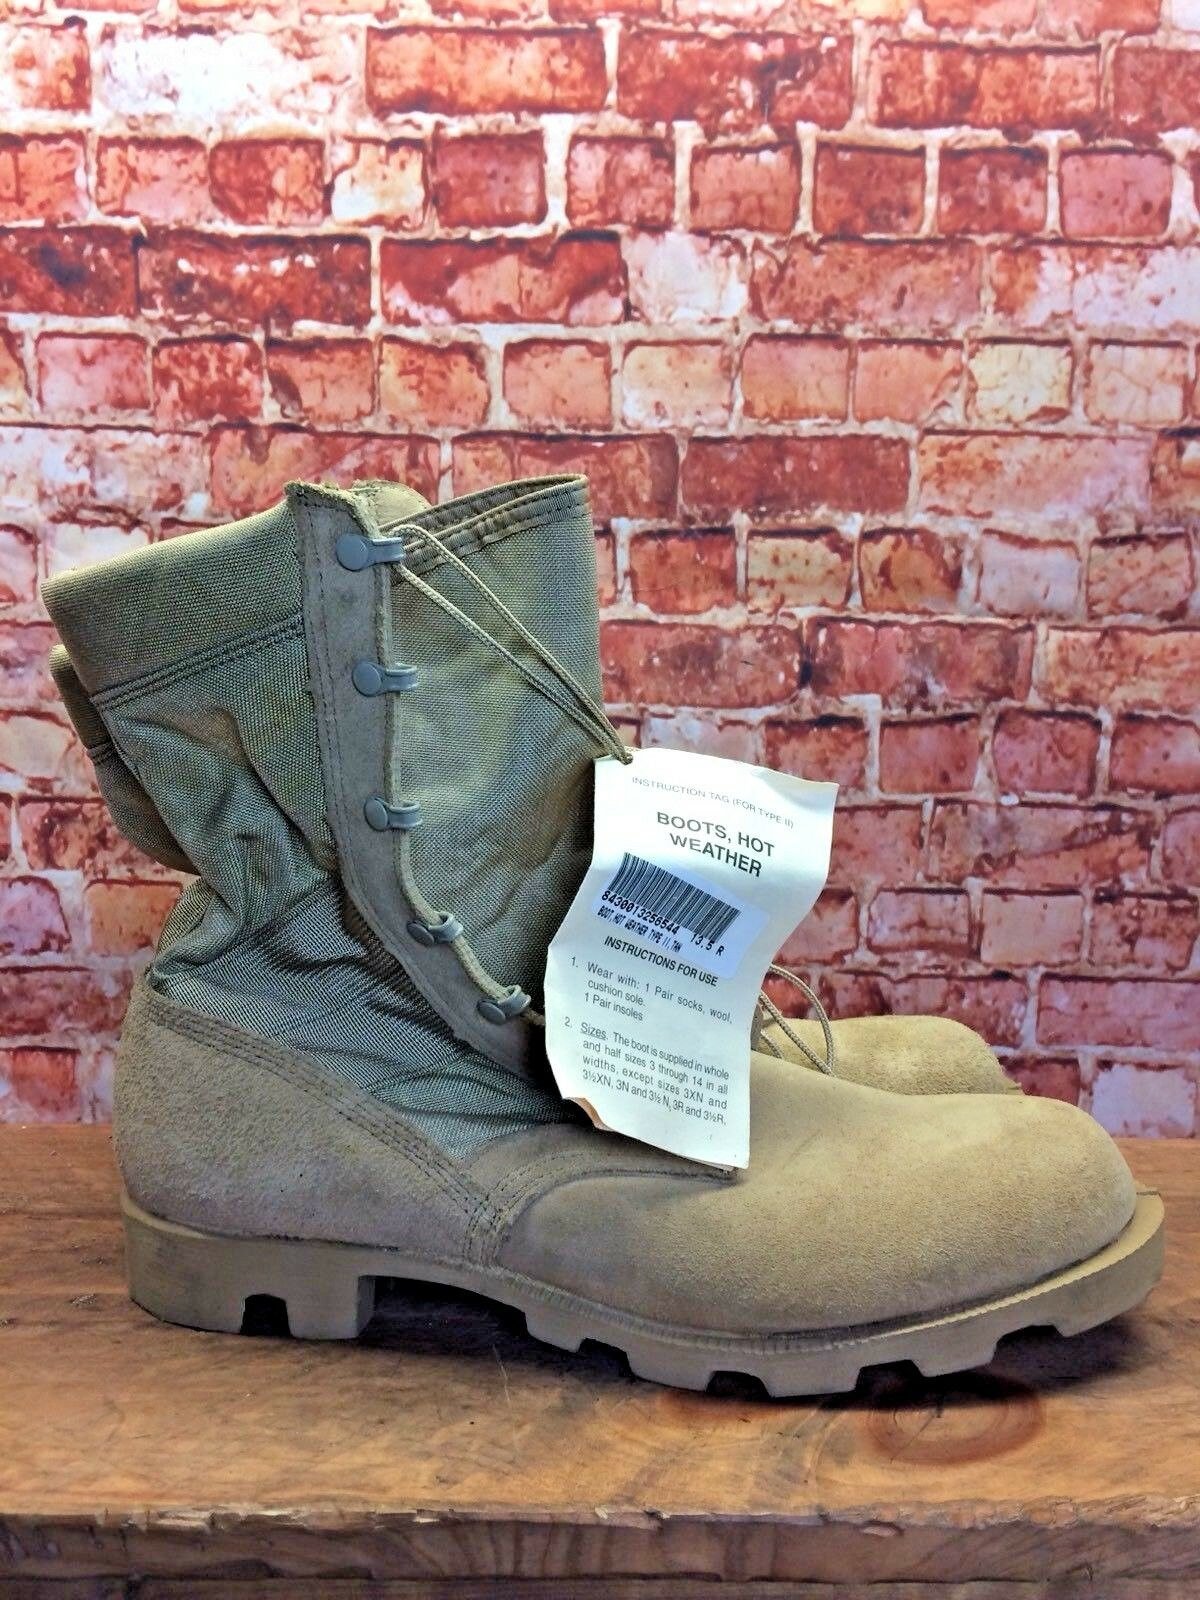 NEW WITH TAGS Men's Military Hot Weather Combat Boots Leather 13 R Made In USA